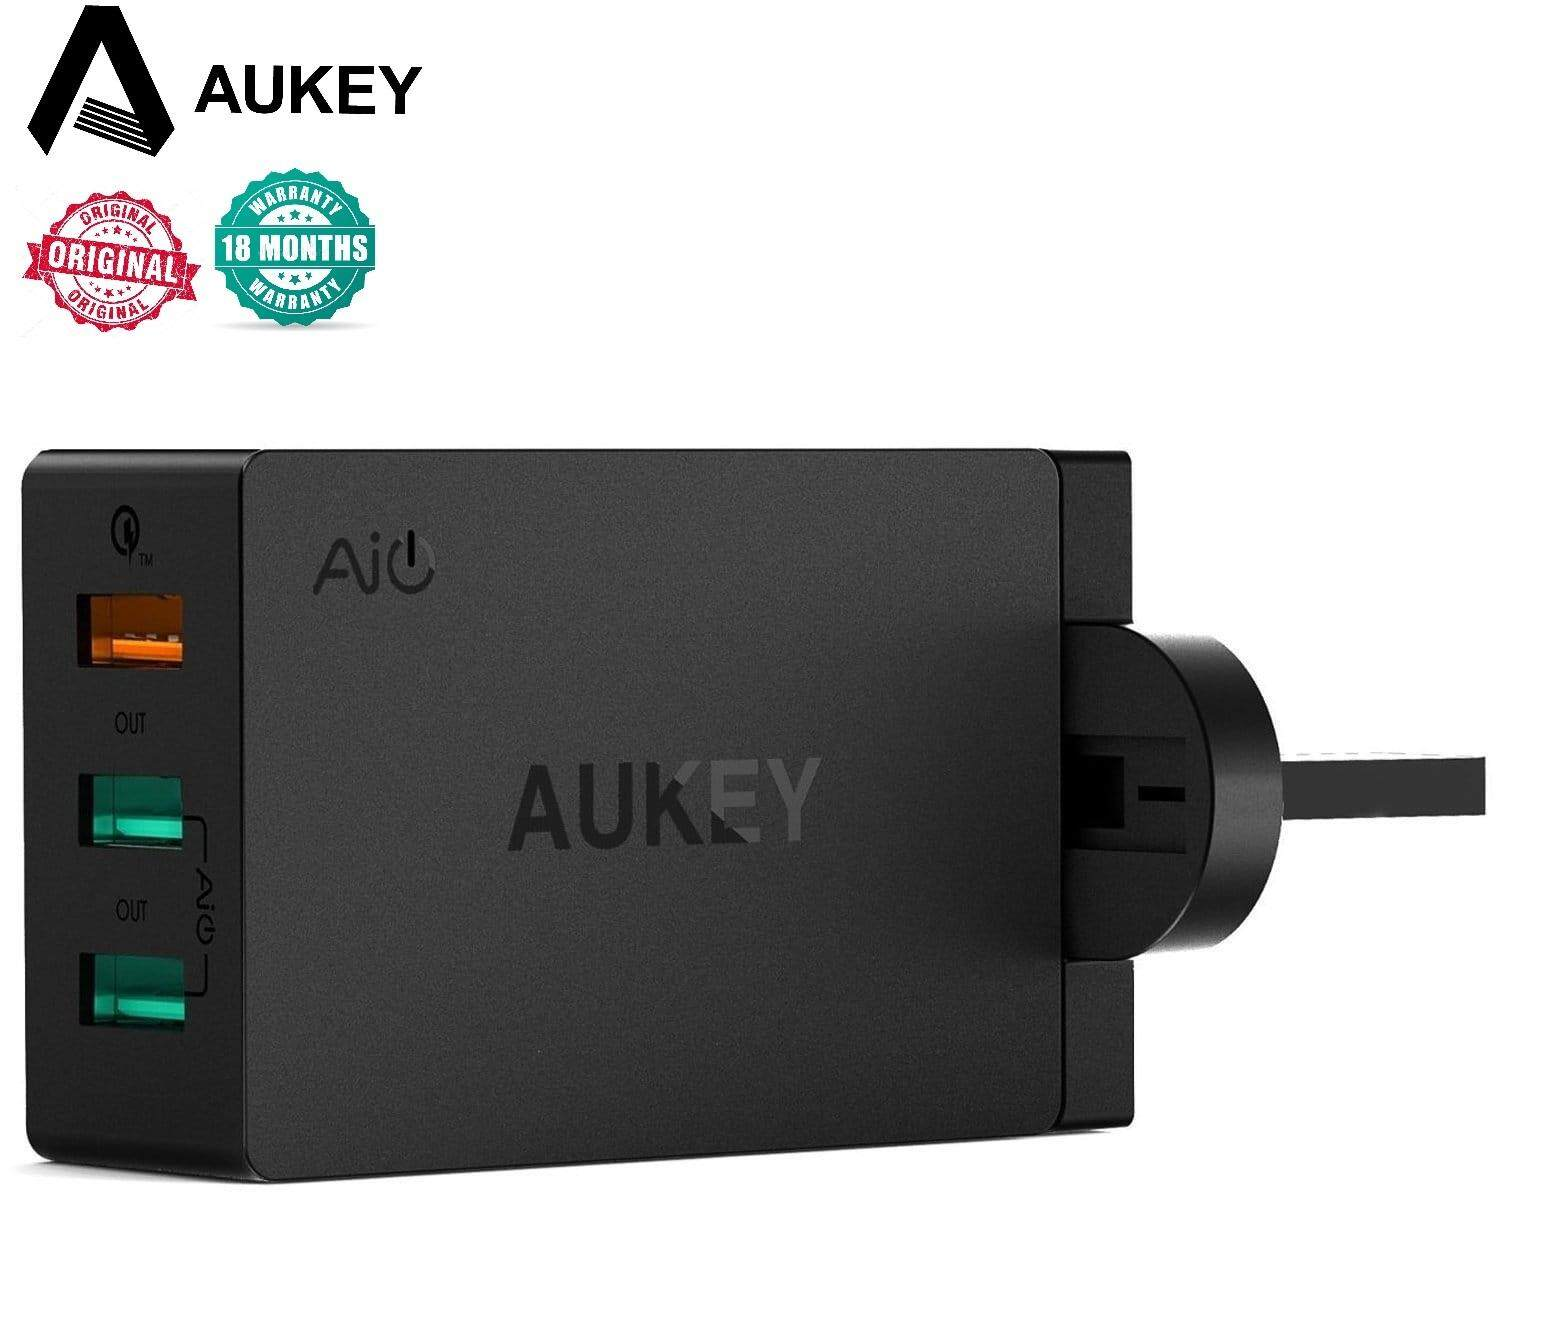 AUKEY PA-T14 3-Port USB Qualcomm Quick Charge 3.0 Travel Charger QC 3.0 3PIN (18 MONTHS WARRANTY)